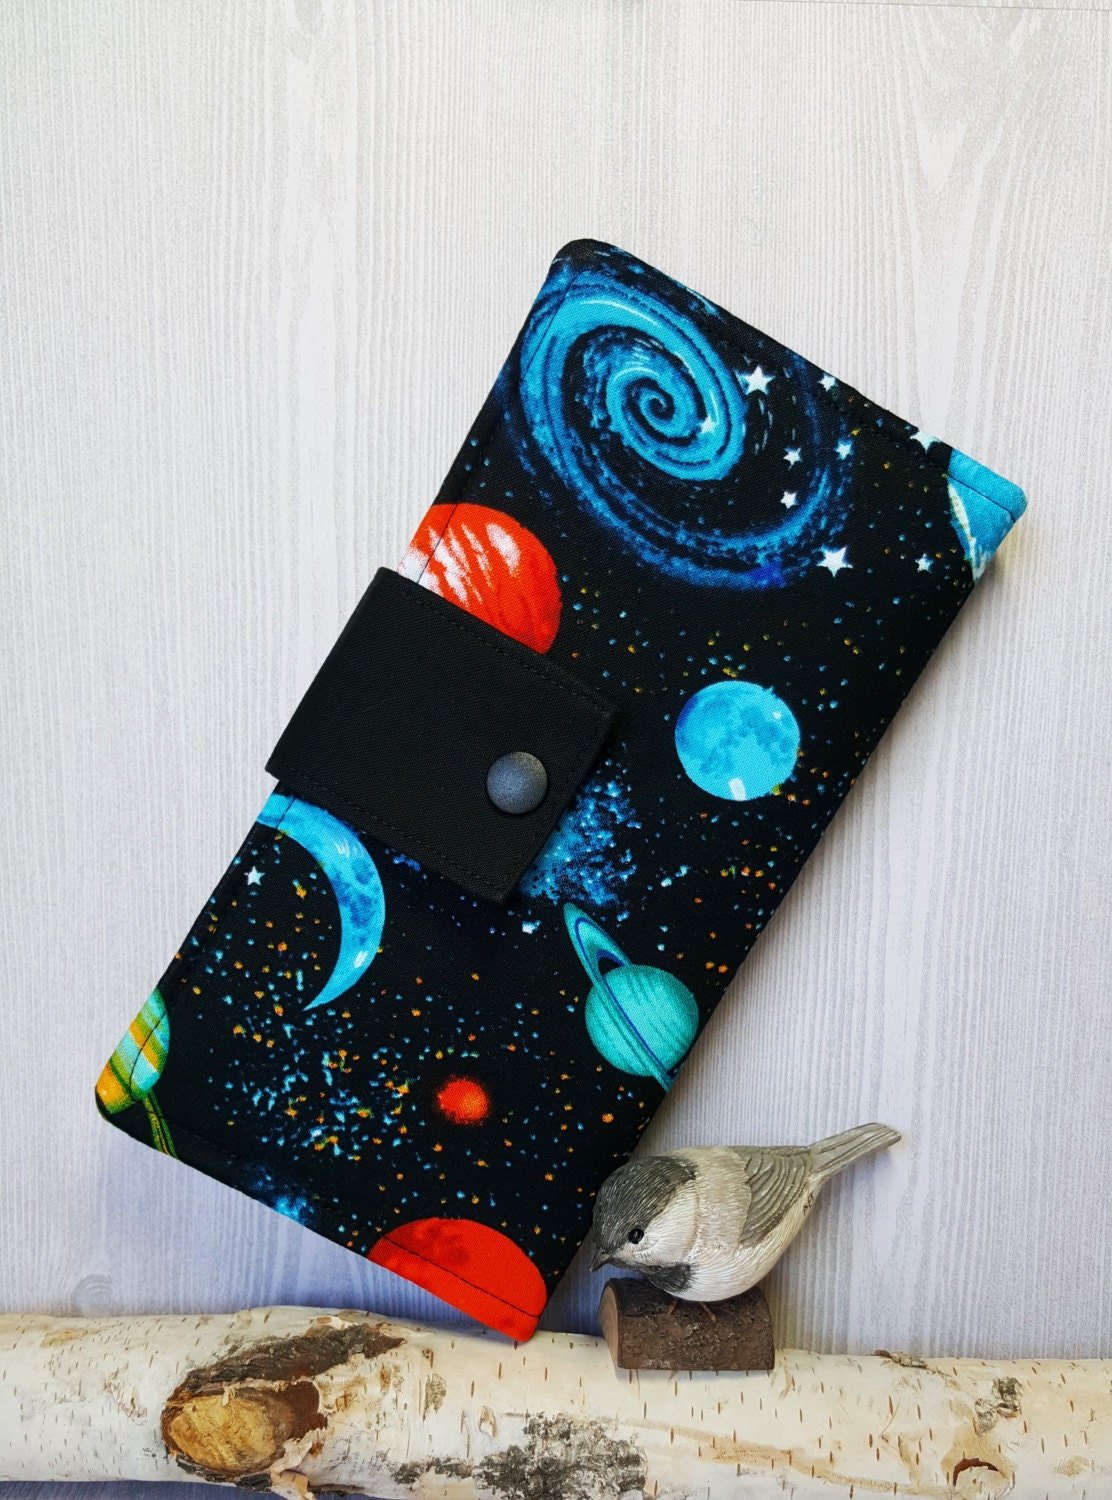 Outer space theme women 39 s wallet fabric clutch wallet for Space inspired fabric